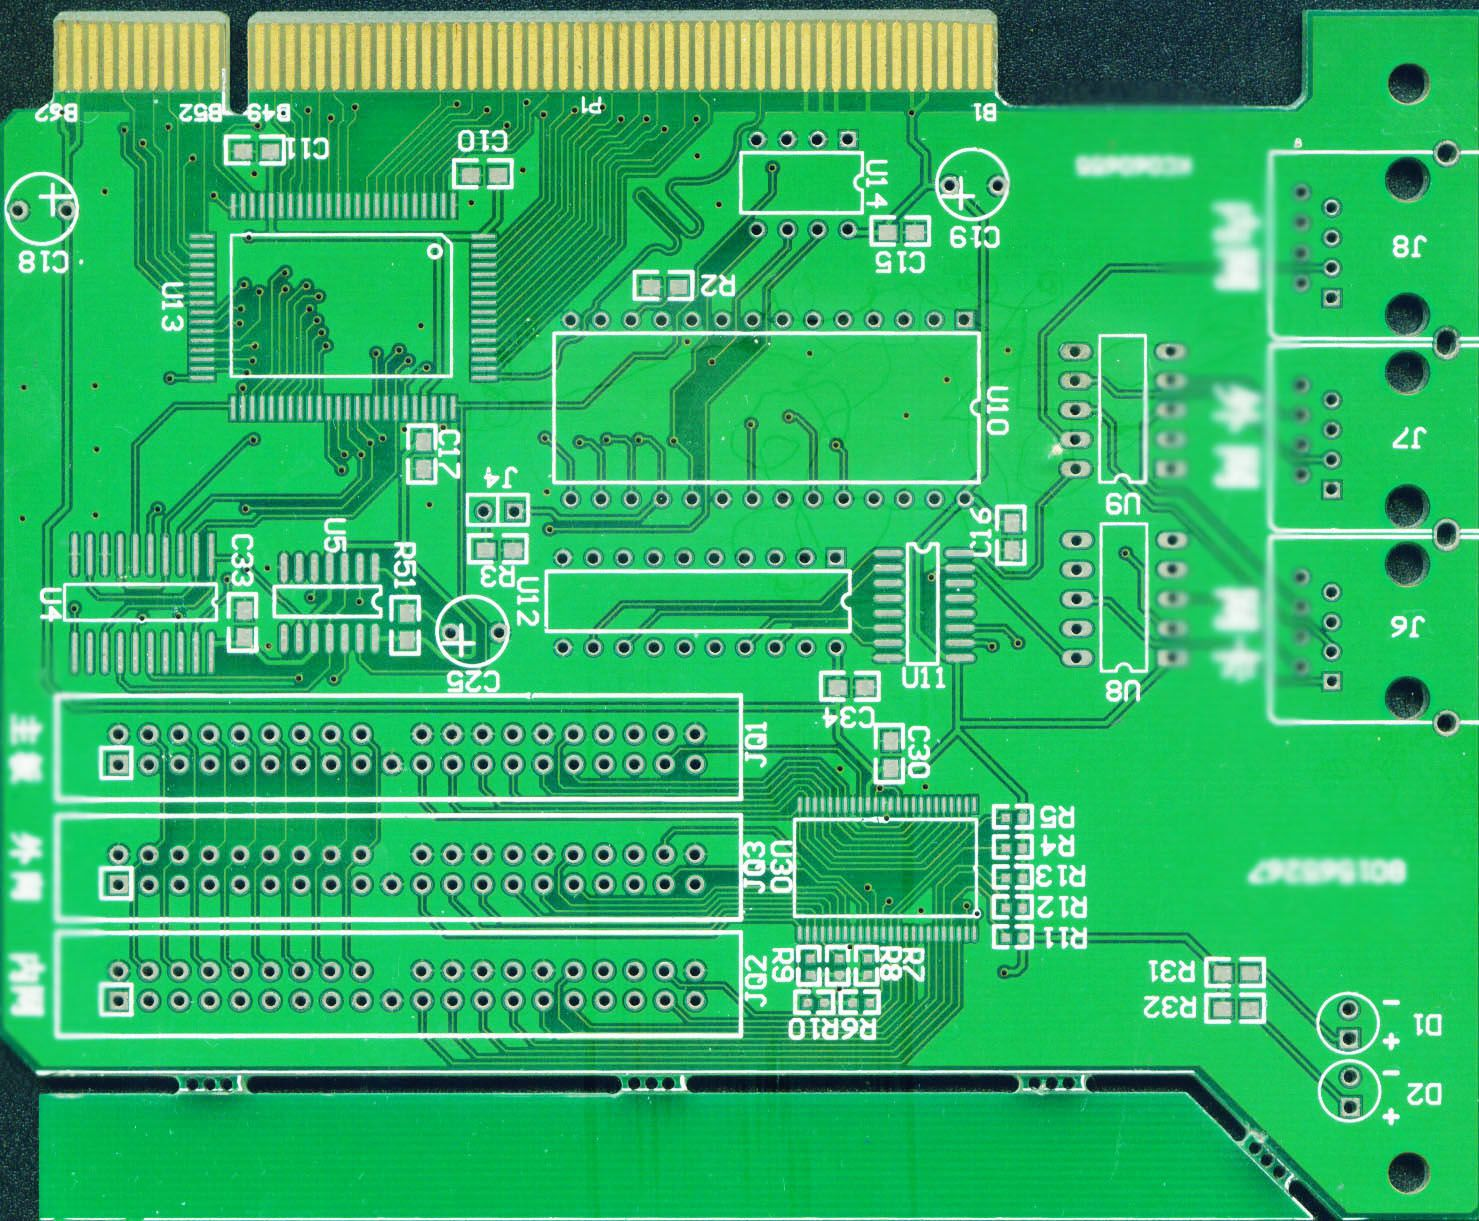 4 Layer Pcb Printed Circuit Board Graphic Overlaymembrane Switch How Is A Manufactured Manufacture